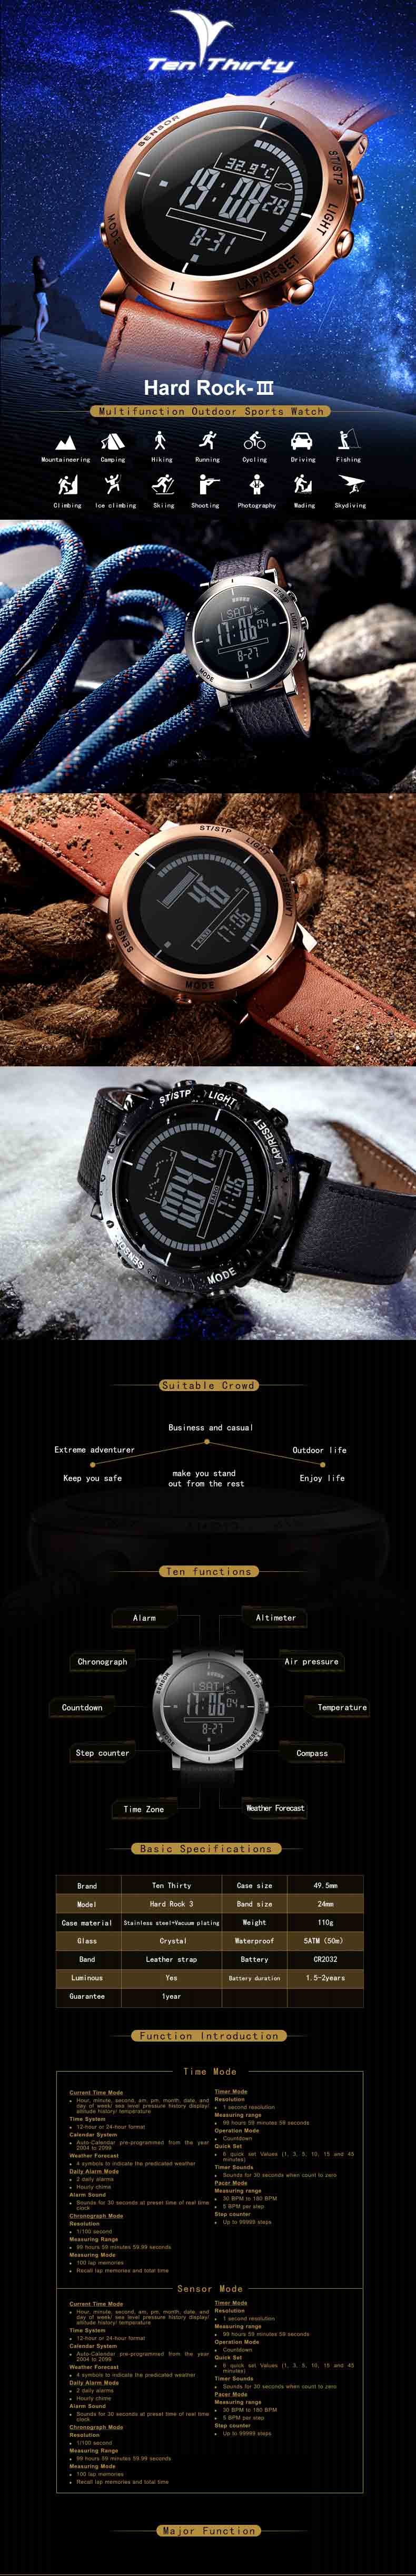 Multifunction Smart Outdoor Sport Men's Wrist Watch